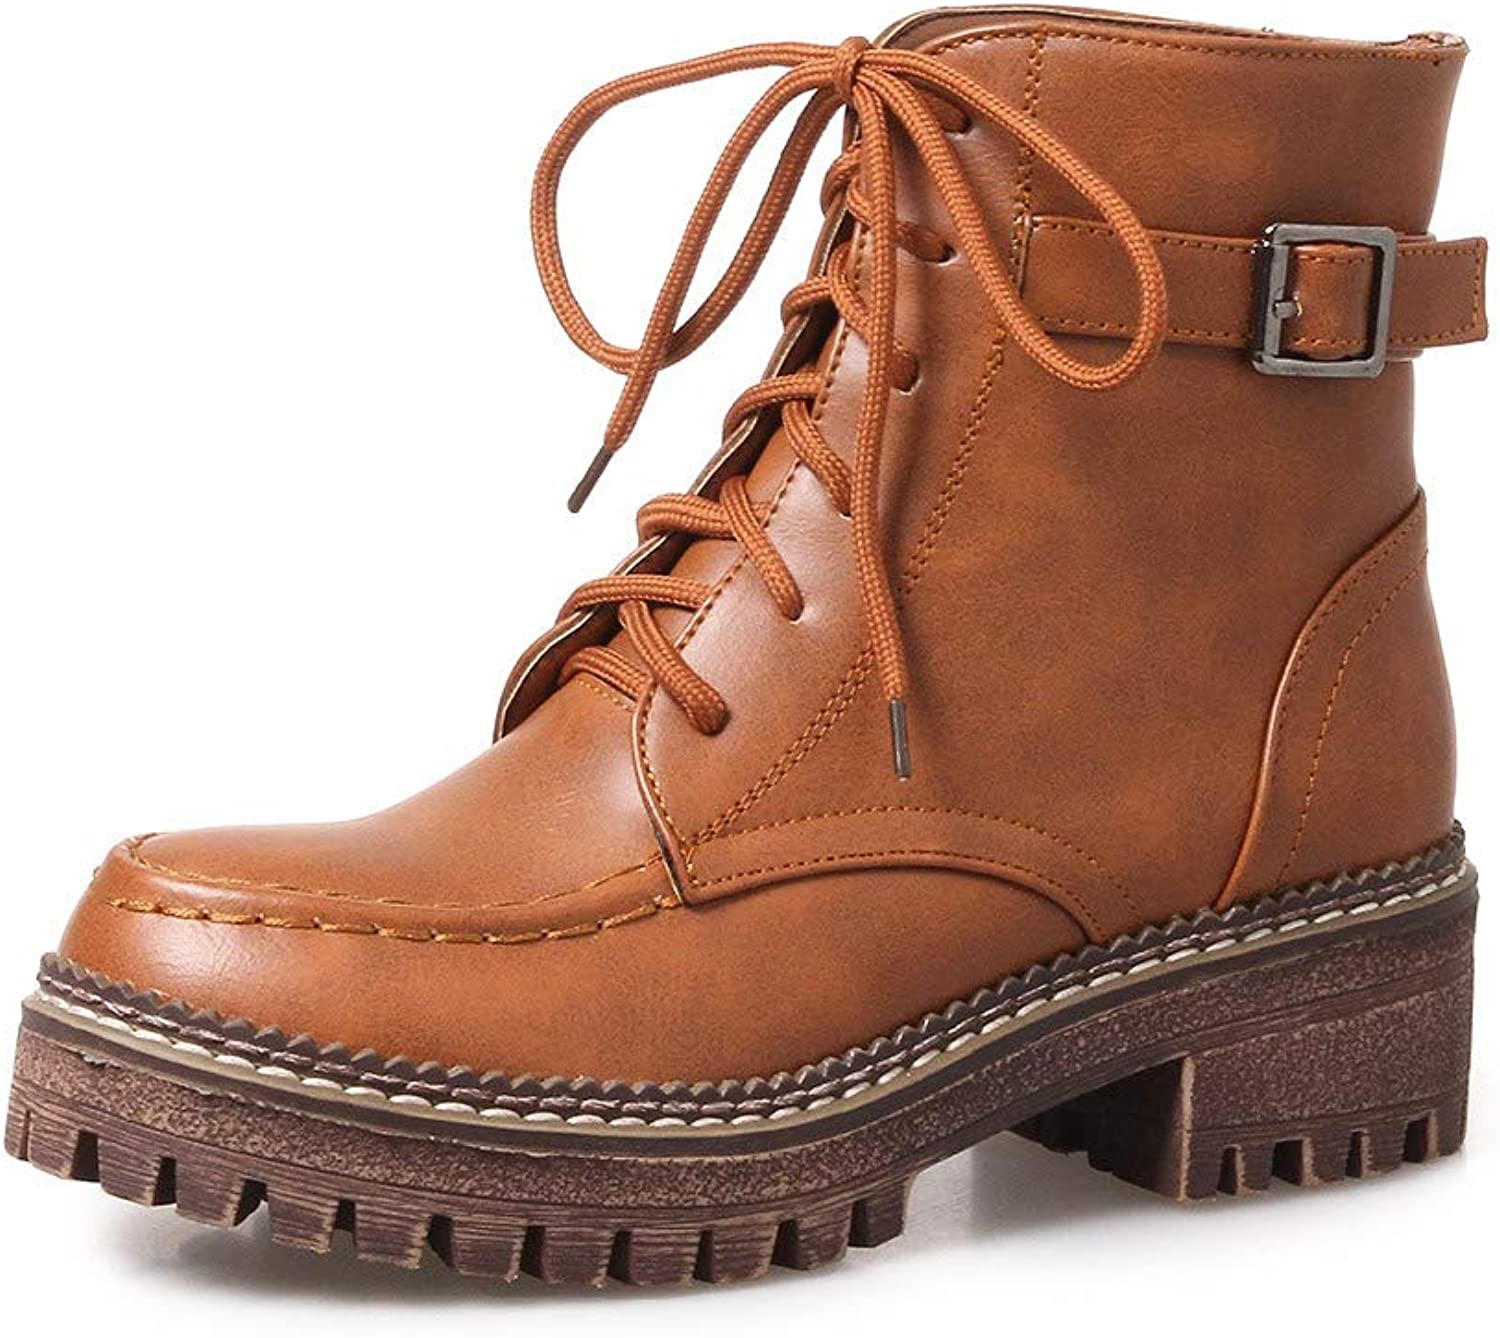 Martin Boots Womens Leather Boots Classic Ankle Boots Ladies Lace Up shoes for Fall Winter 2018 New